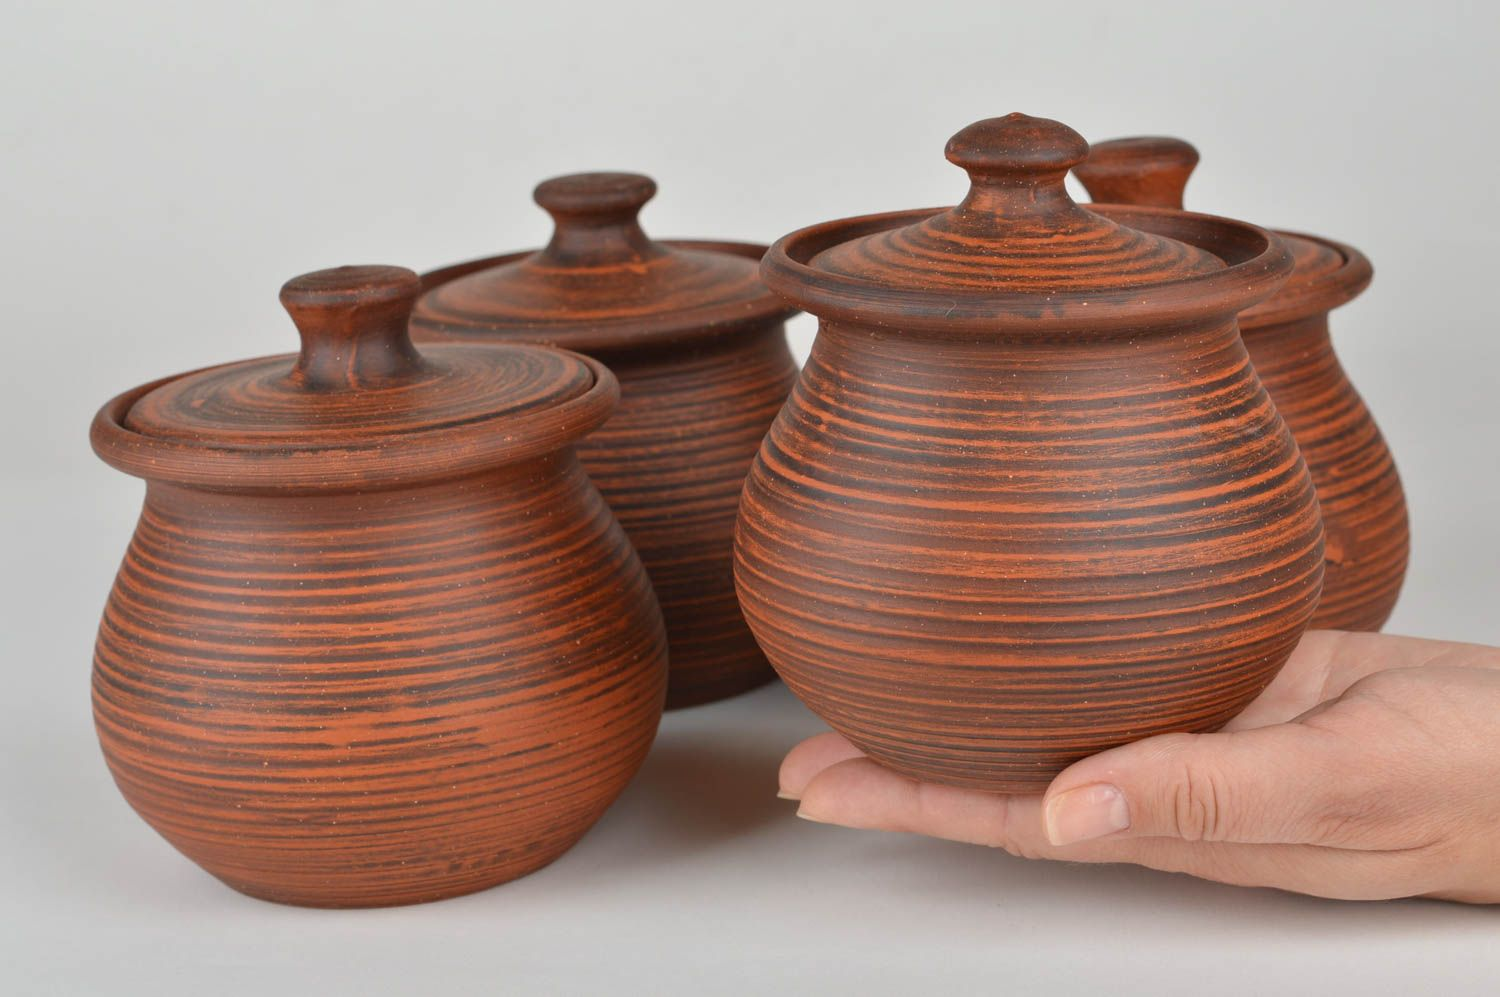 Set of handmade ceramic pots with lids for baking 4 items for 400 ml photo 4